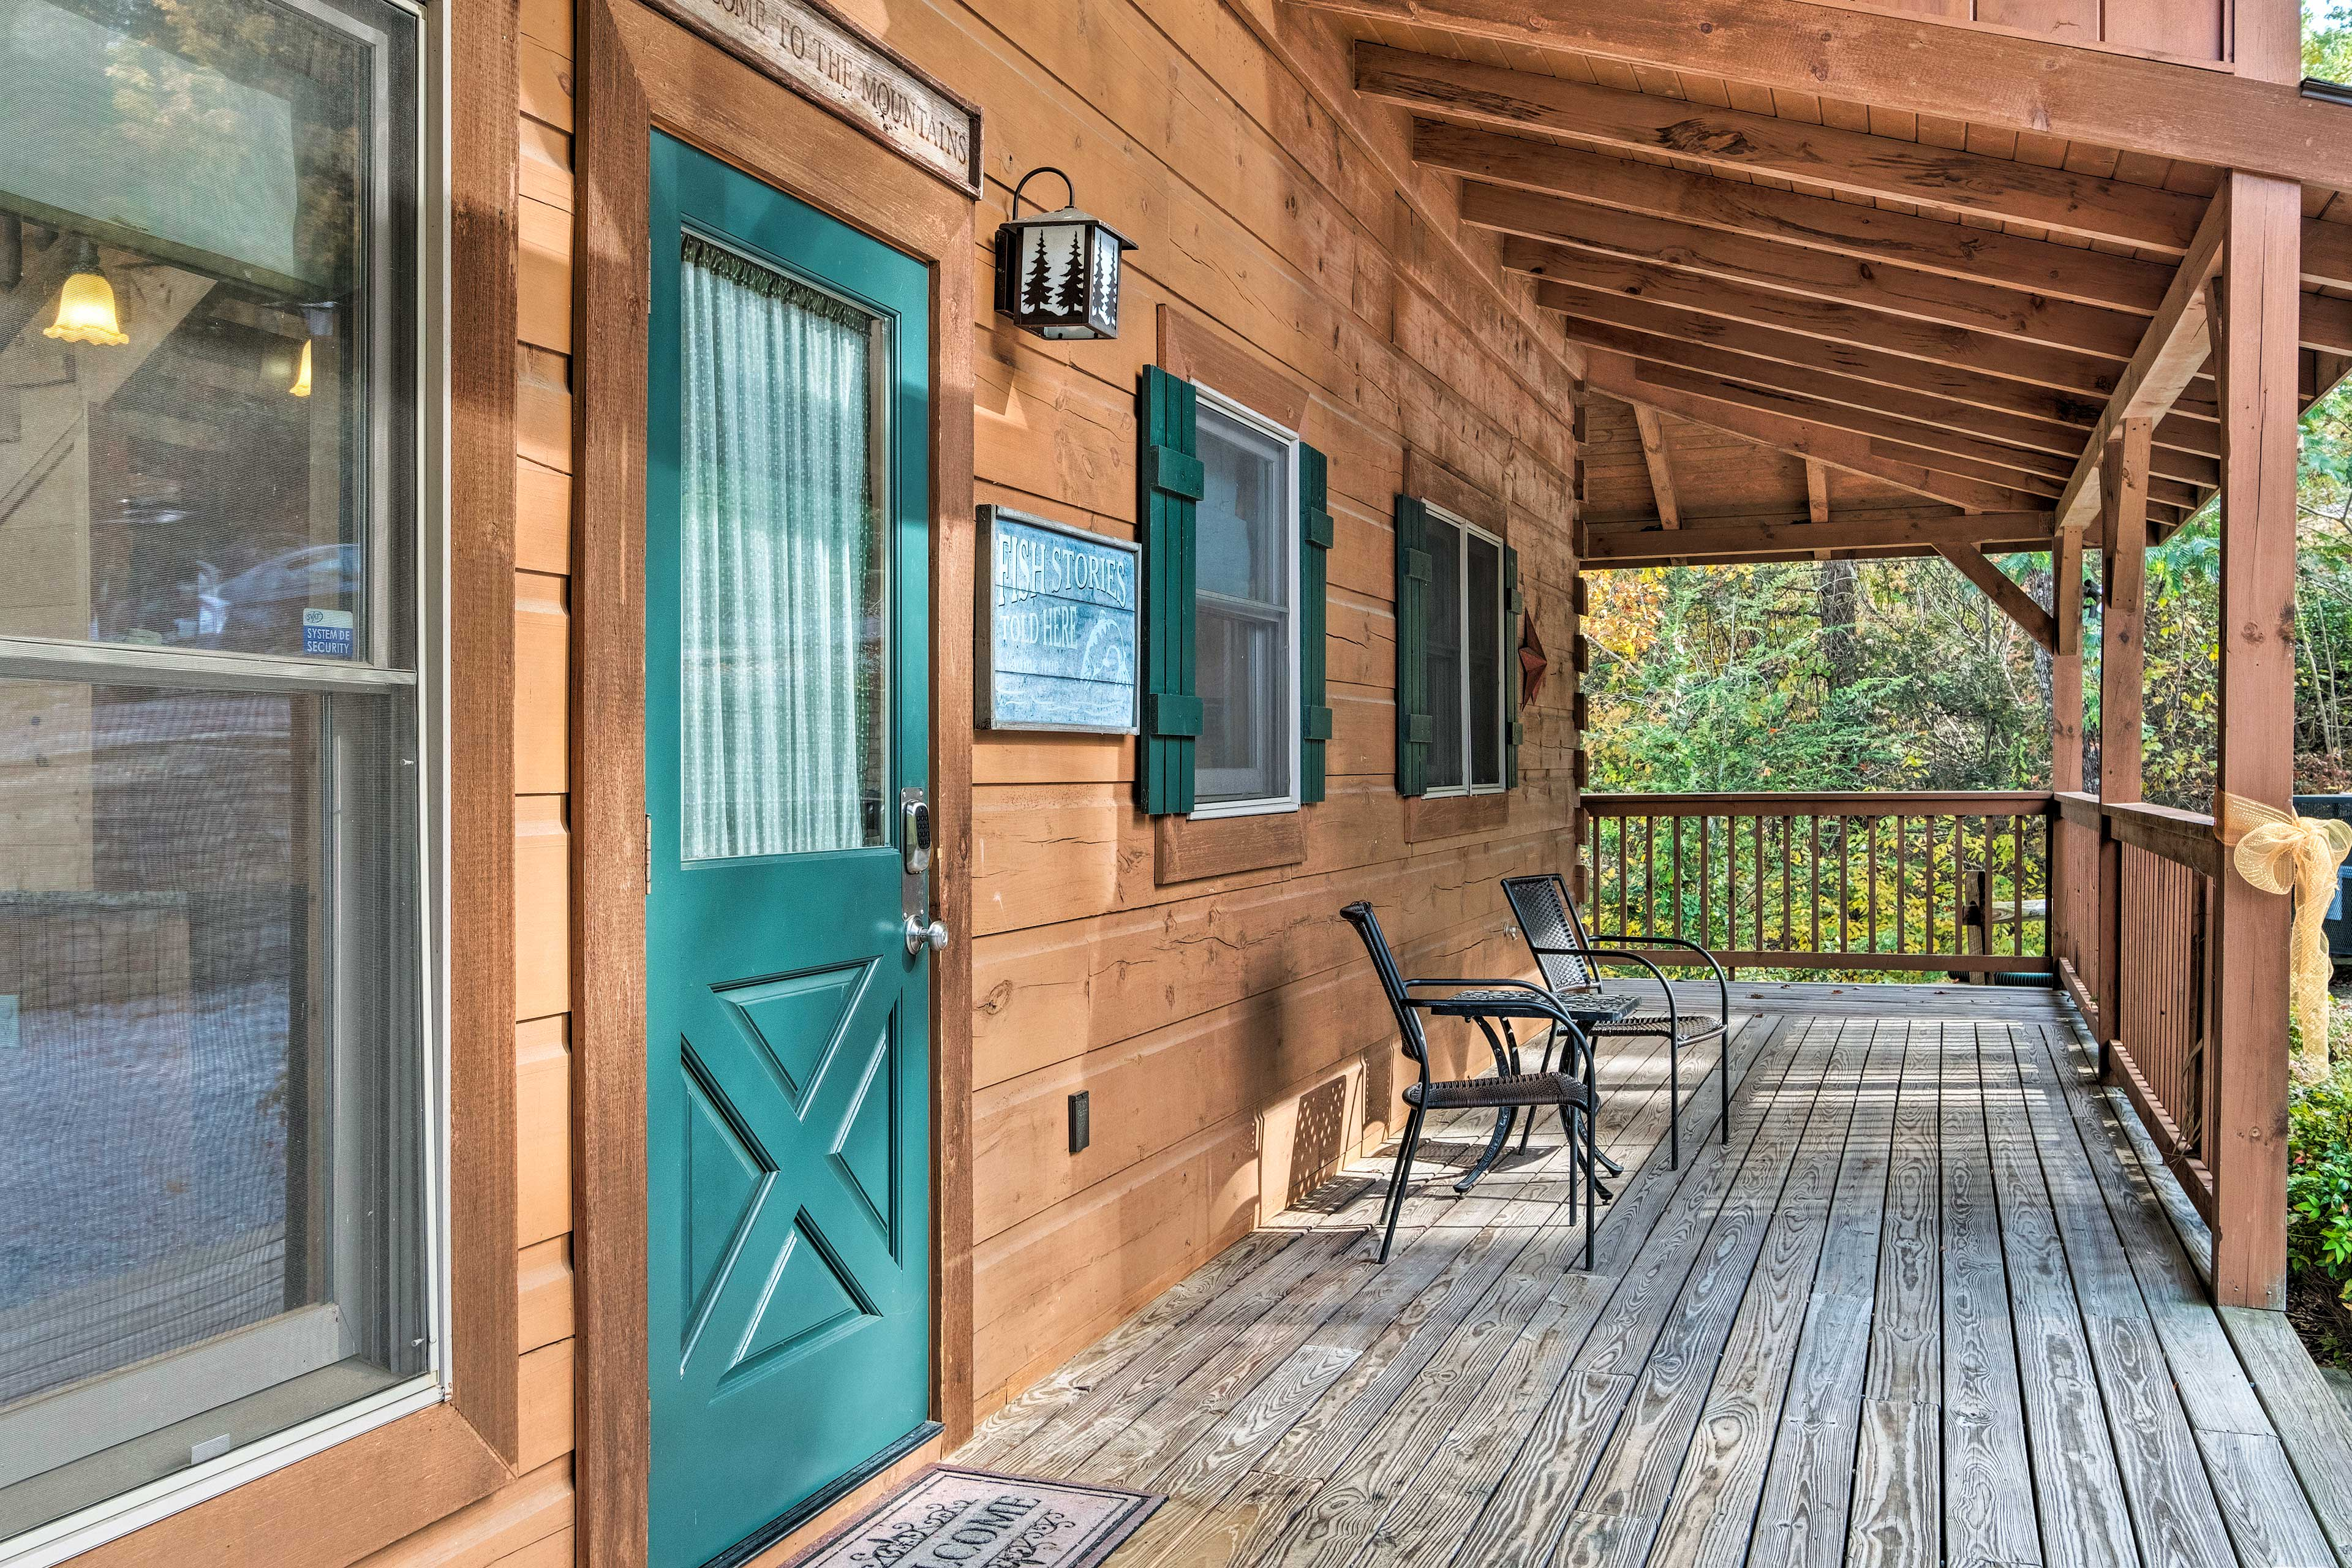 Sip coffee on the spacious deck breathing in the fresh mountain air.